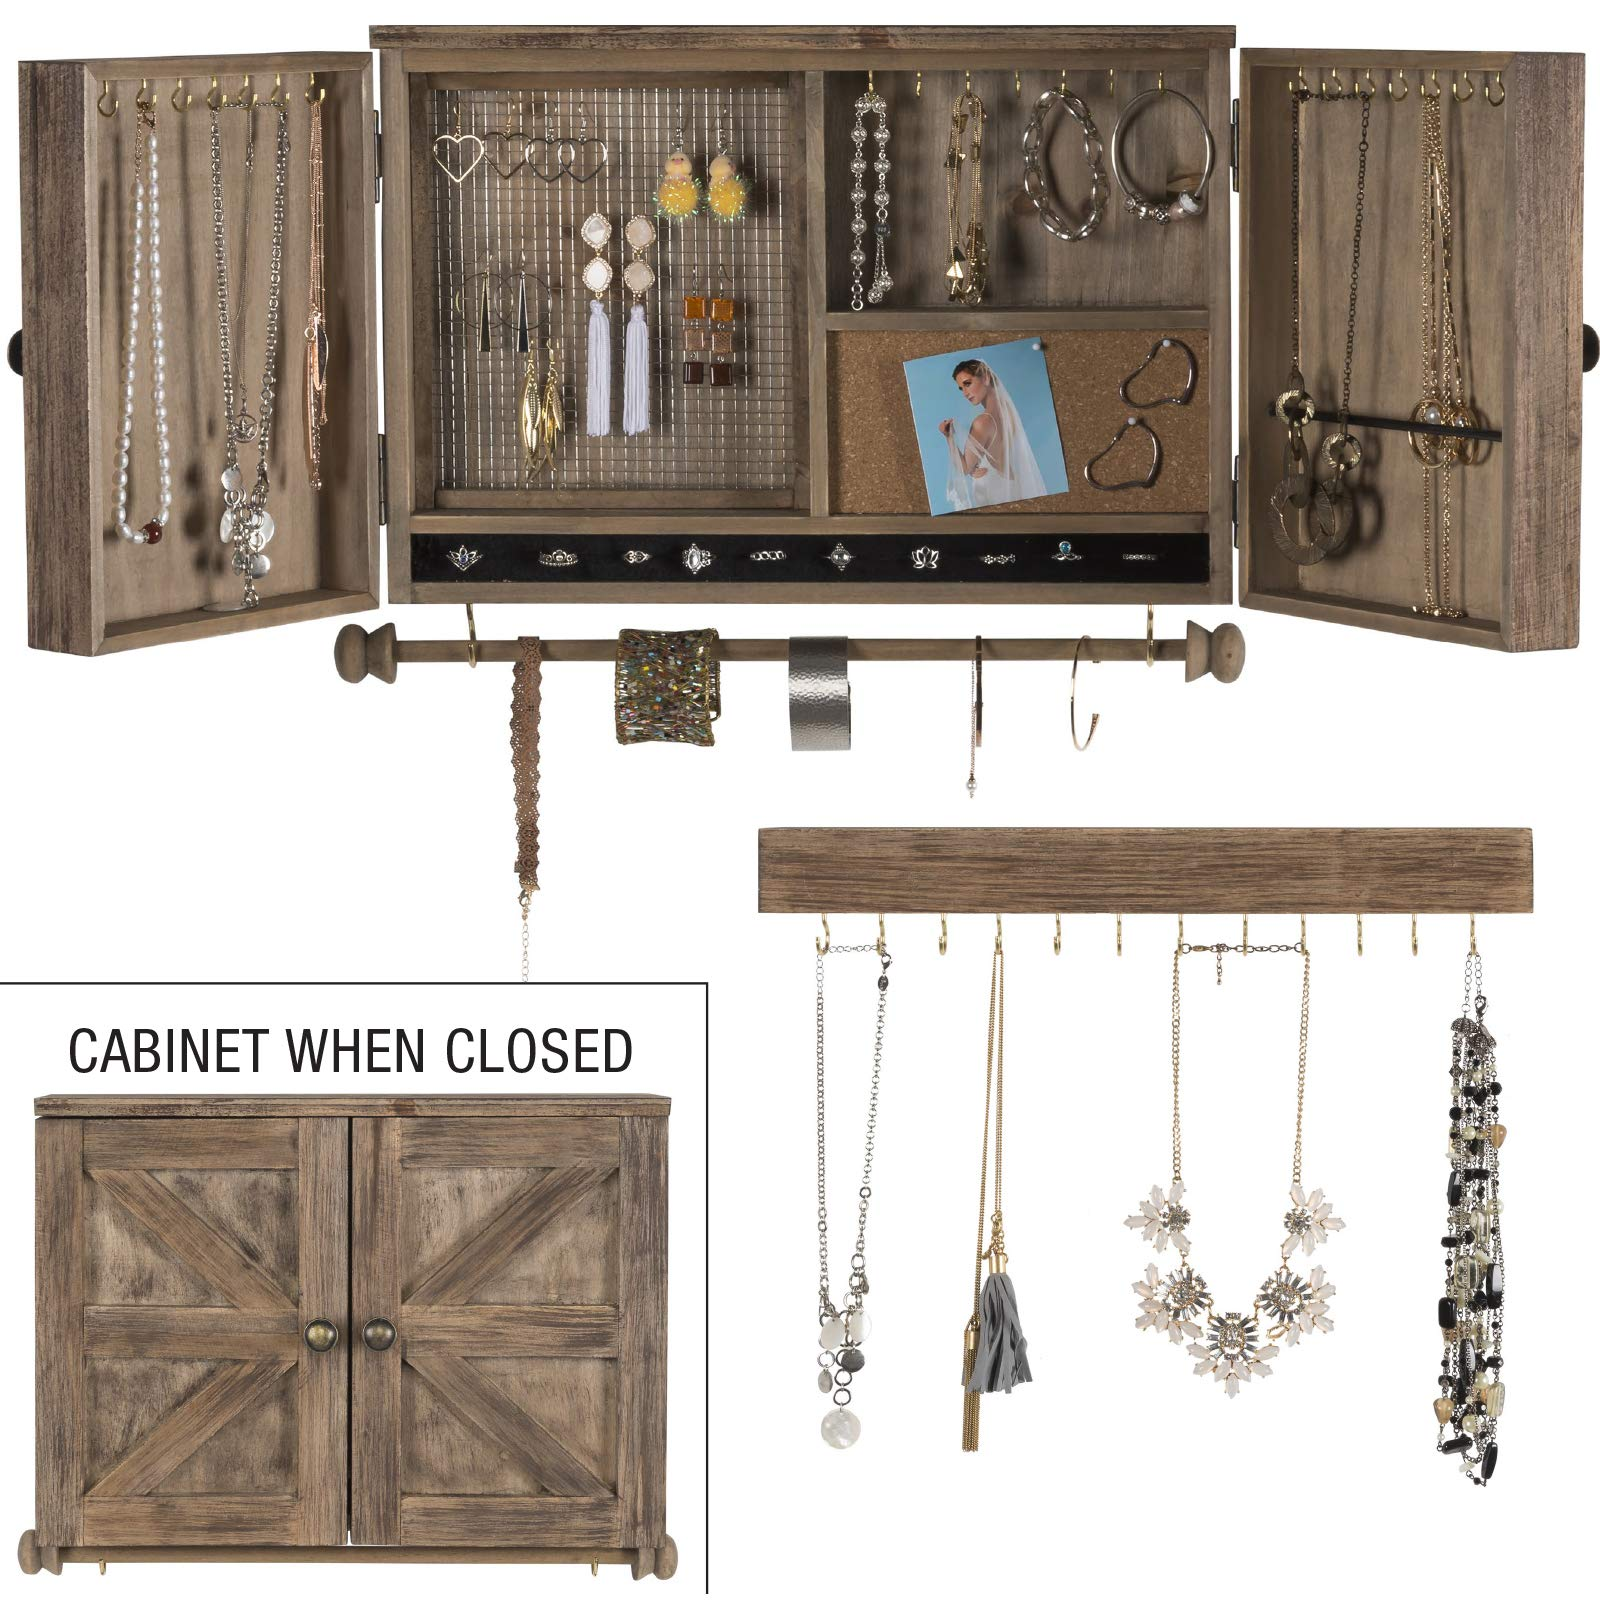 Rustic Wall Mounted Jewelry Organizer with Wooden Barndoor Decor. Jewelry holder for Necklaces, Earings, Bracelets, Ring Holder, and Accessories. Includes hook organizer for hanging jewelry (Brown) by Excello Global Products